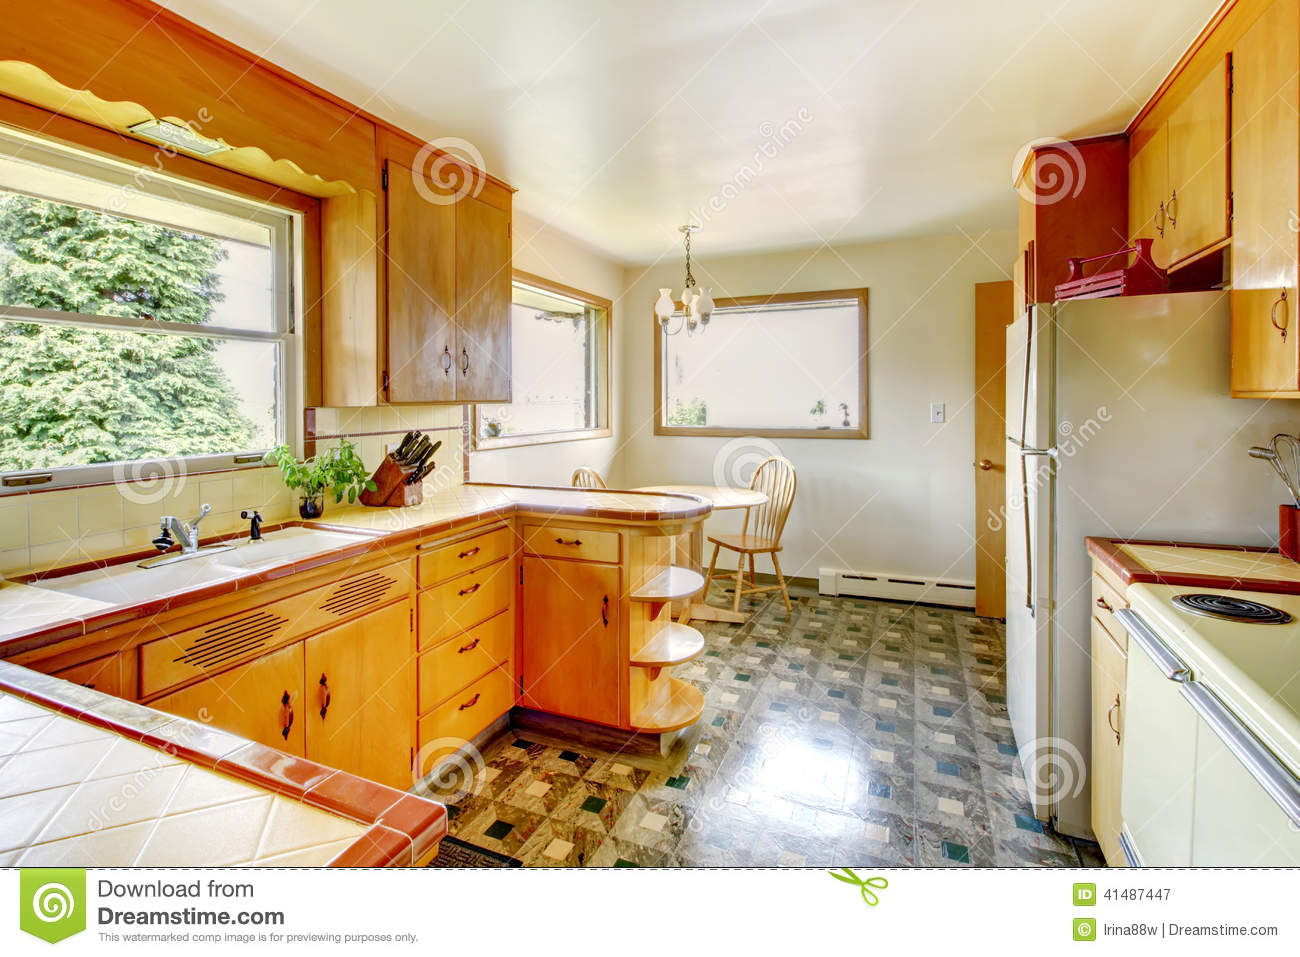 Kitchen With Rustic Storage Cabinets Stock Photo Image